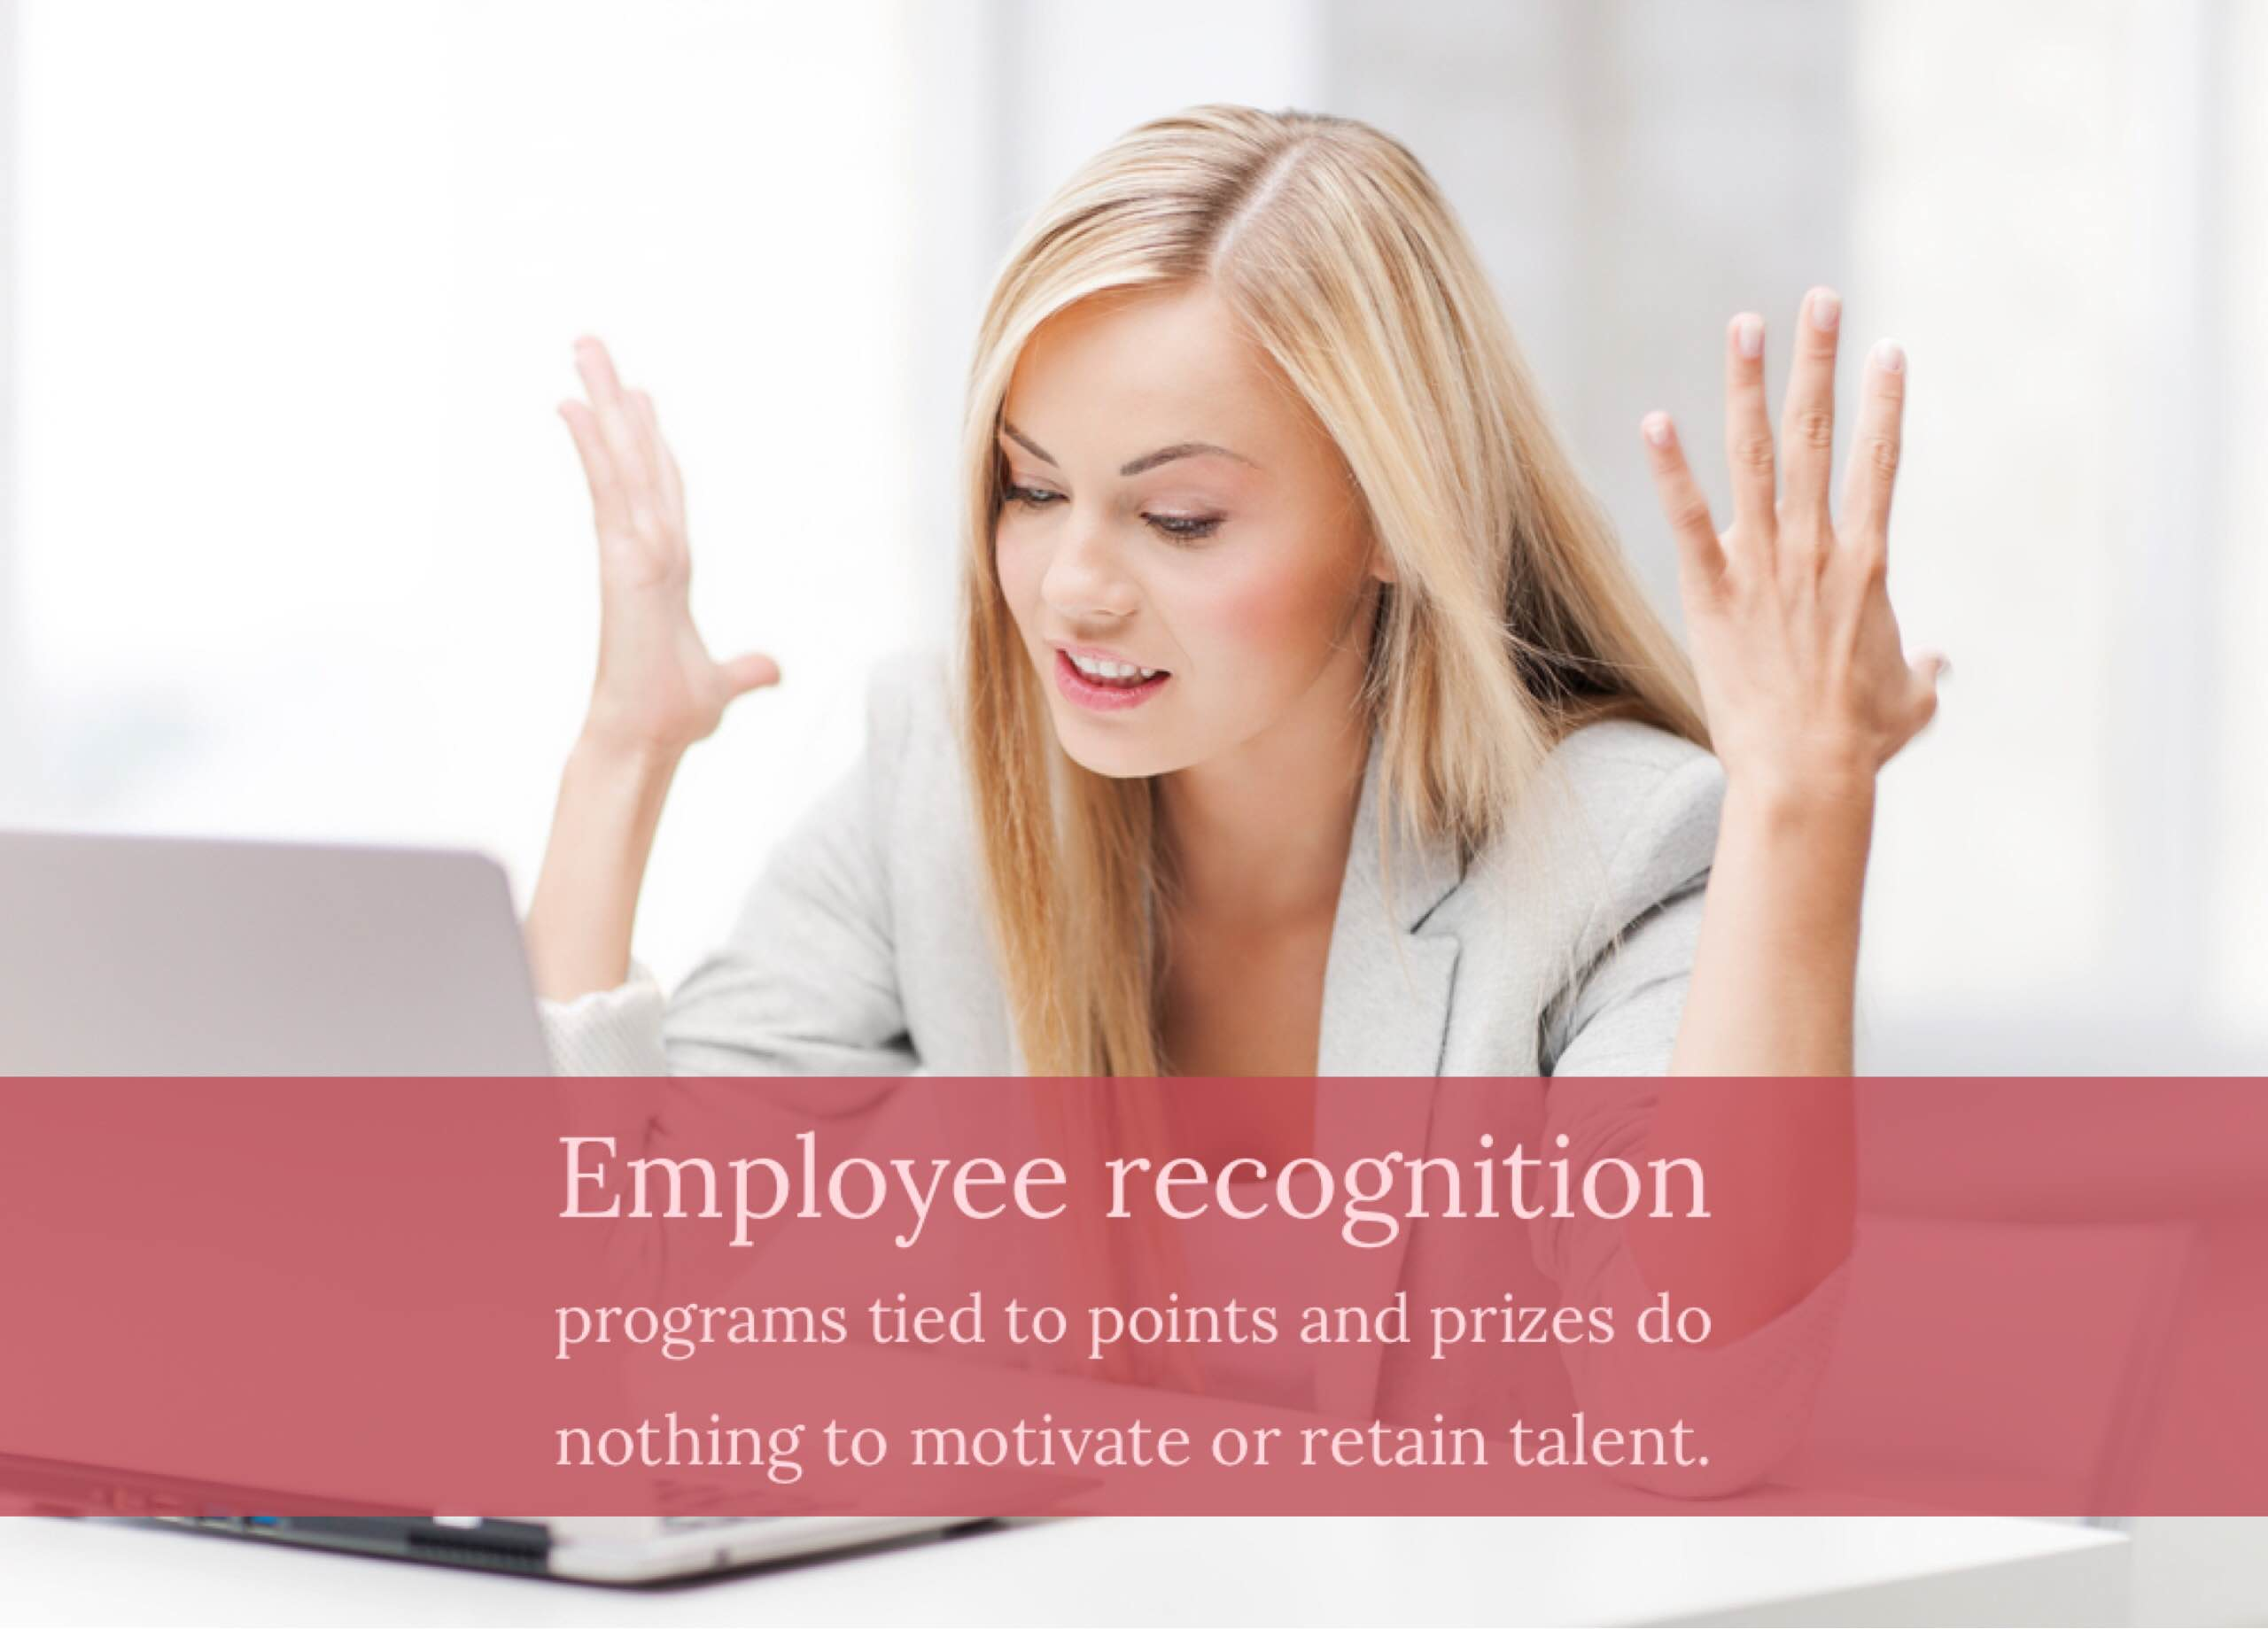 Media mention: Building employee recognition programs - HR.com